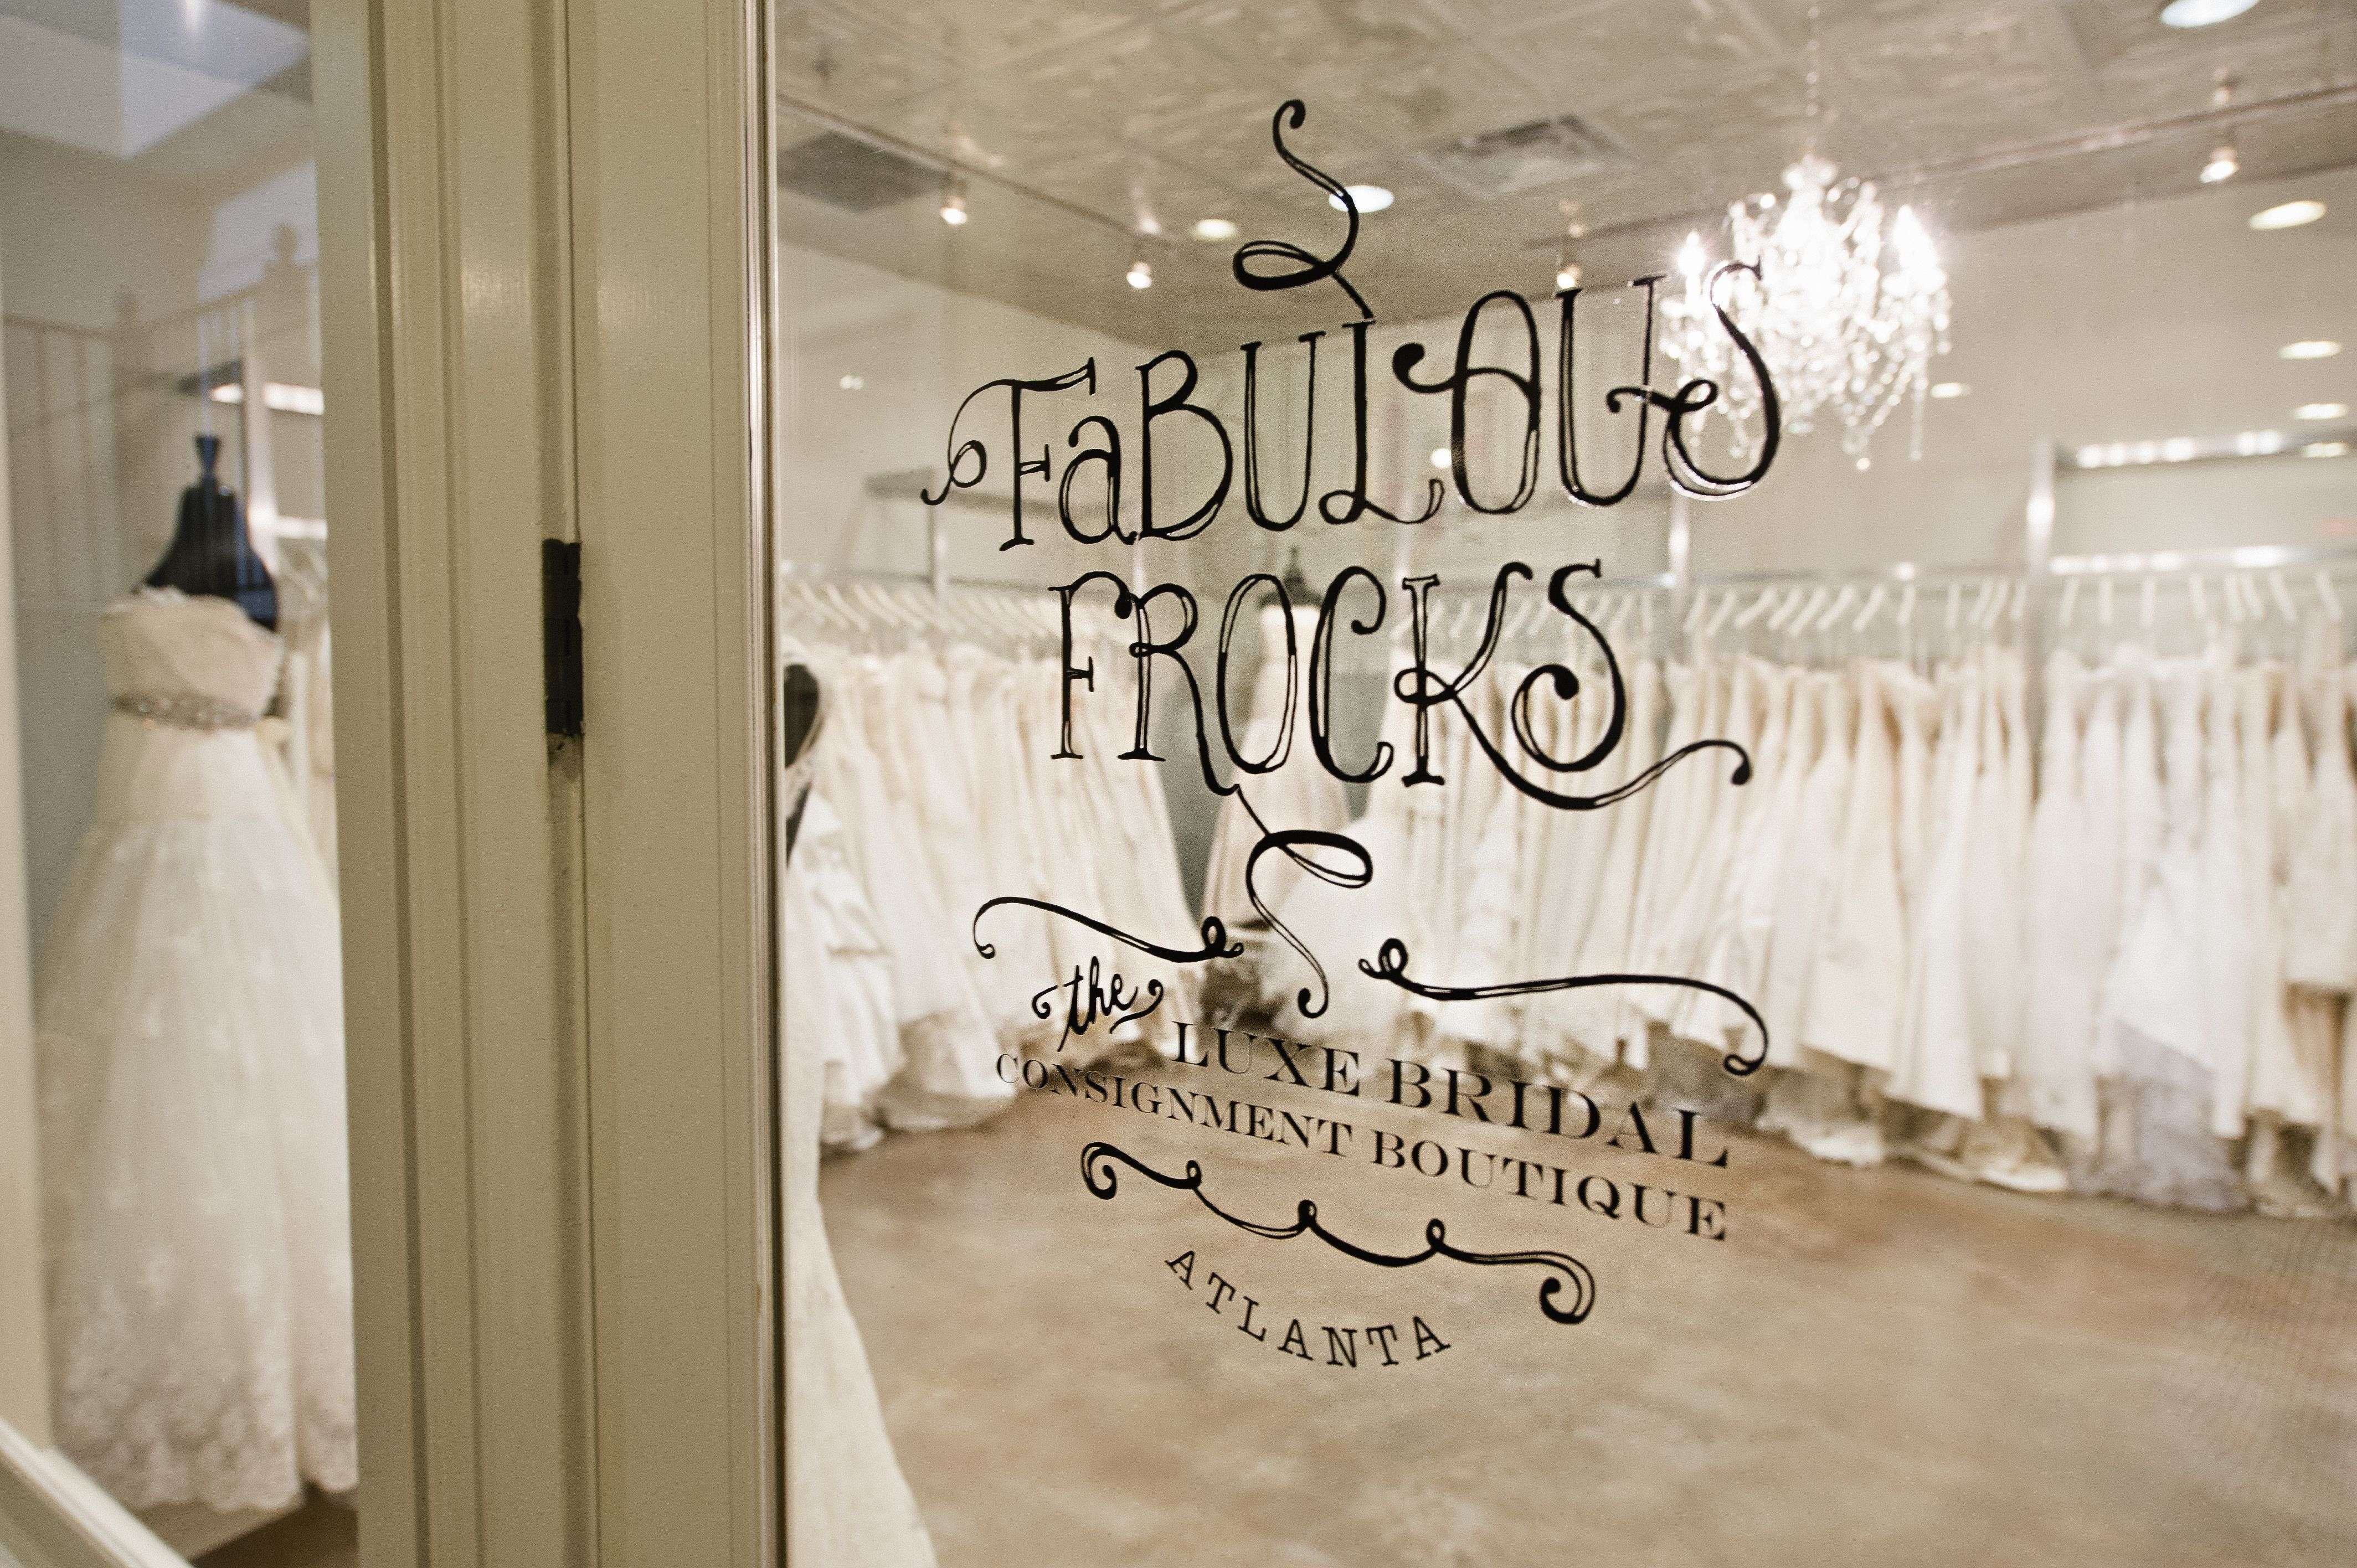 Atlanta Boutique Holiday Hours Wedding gown shop